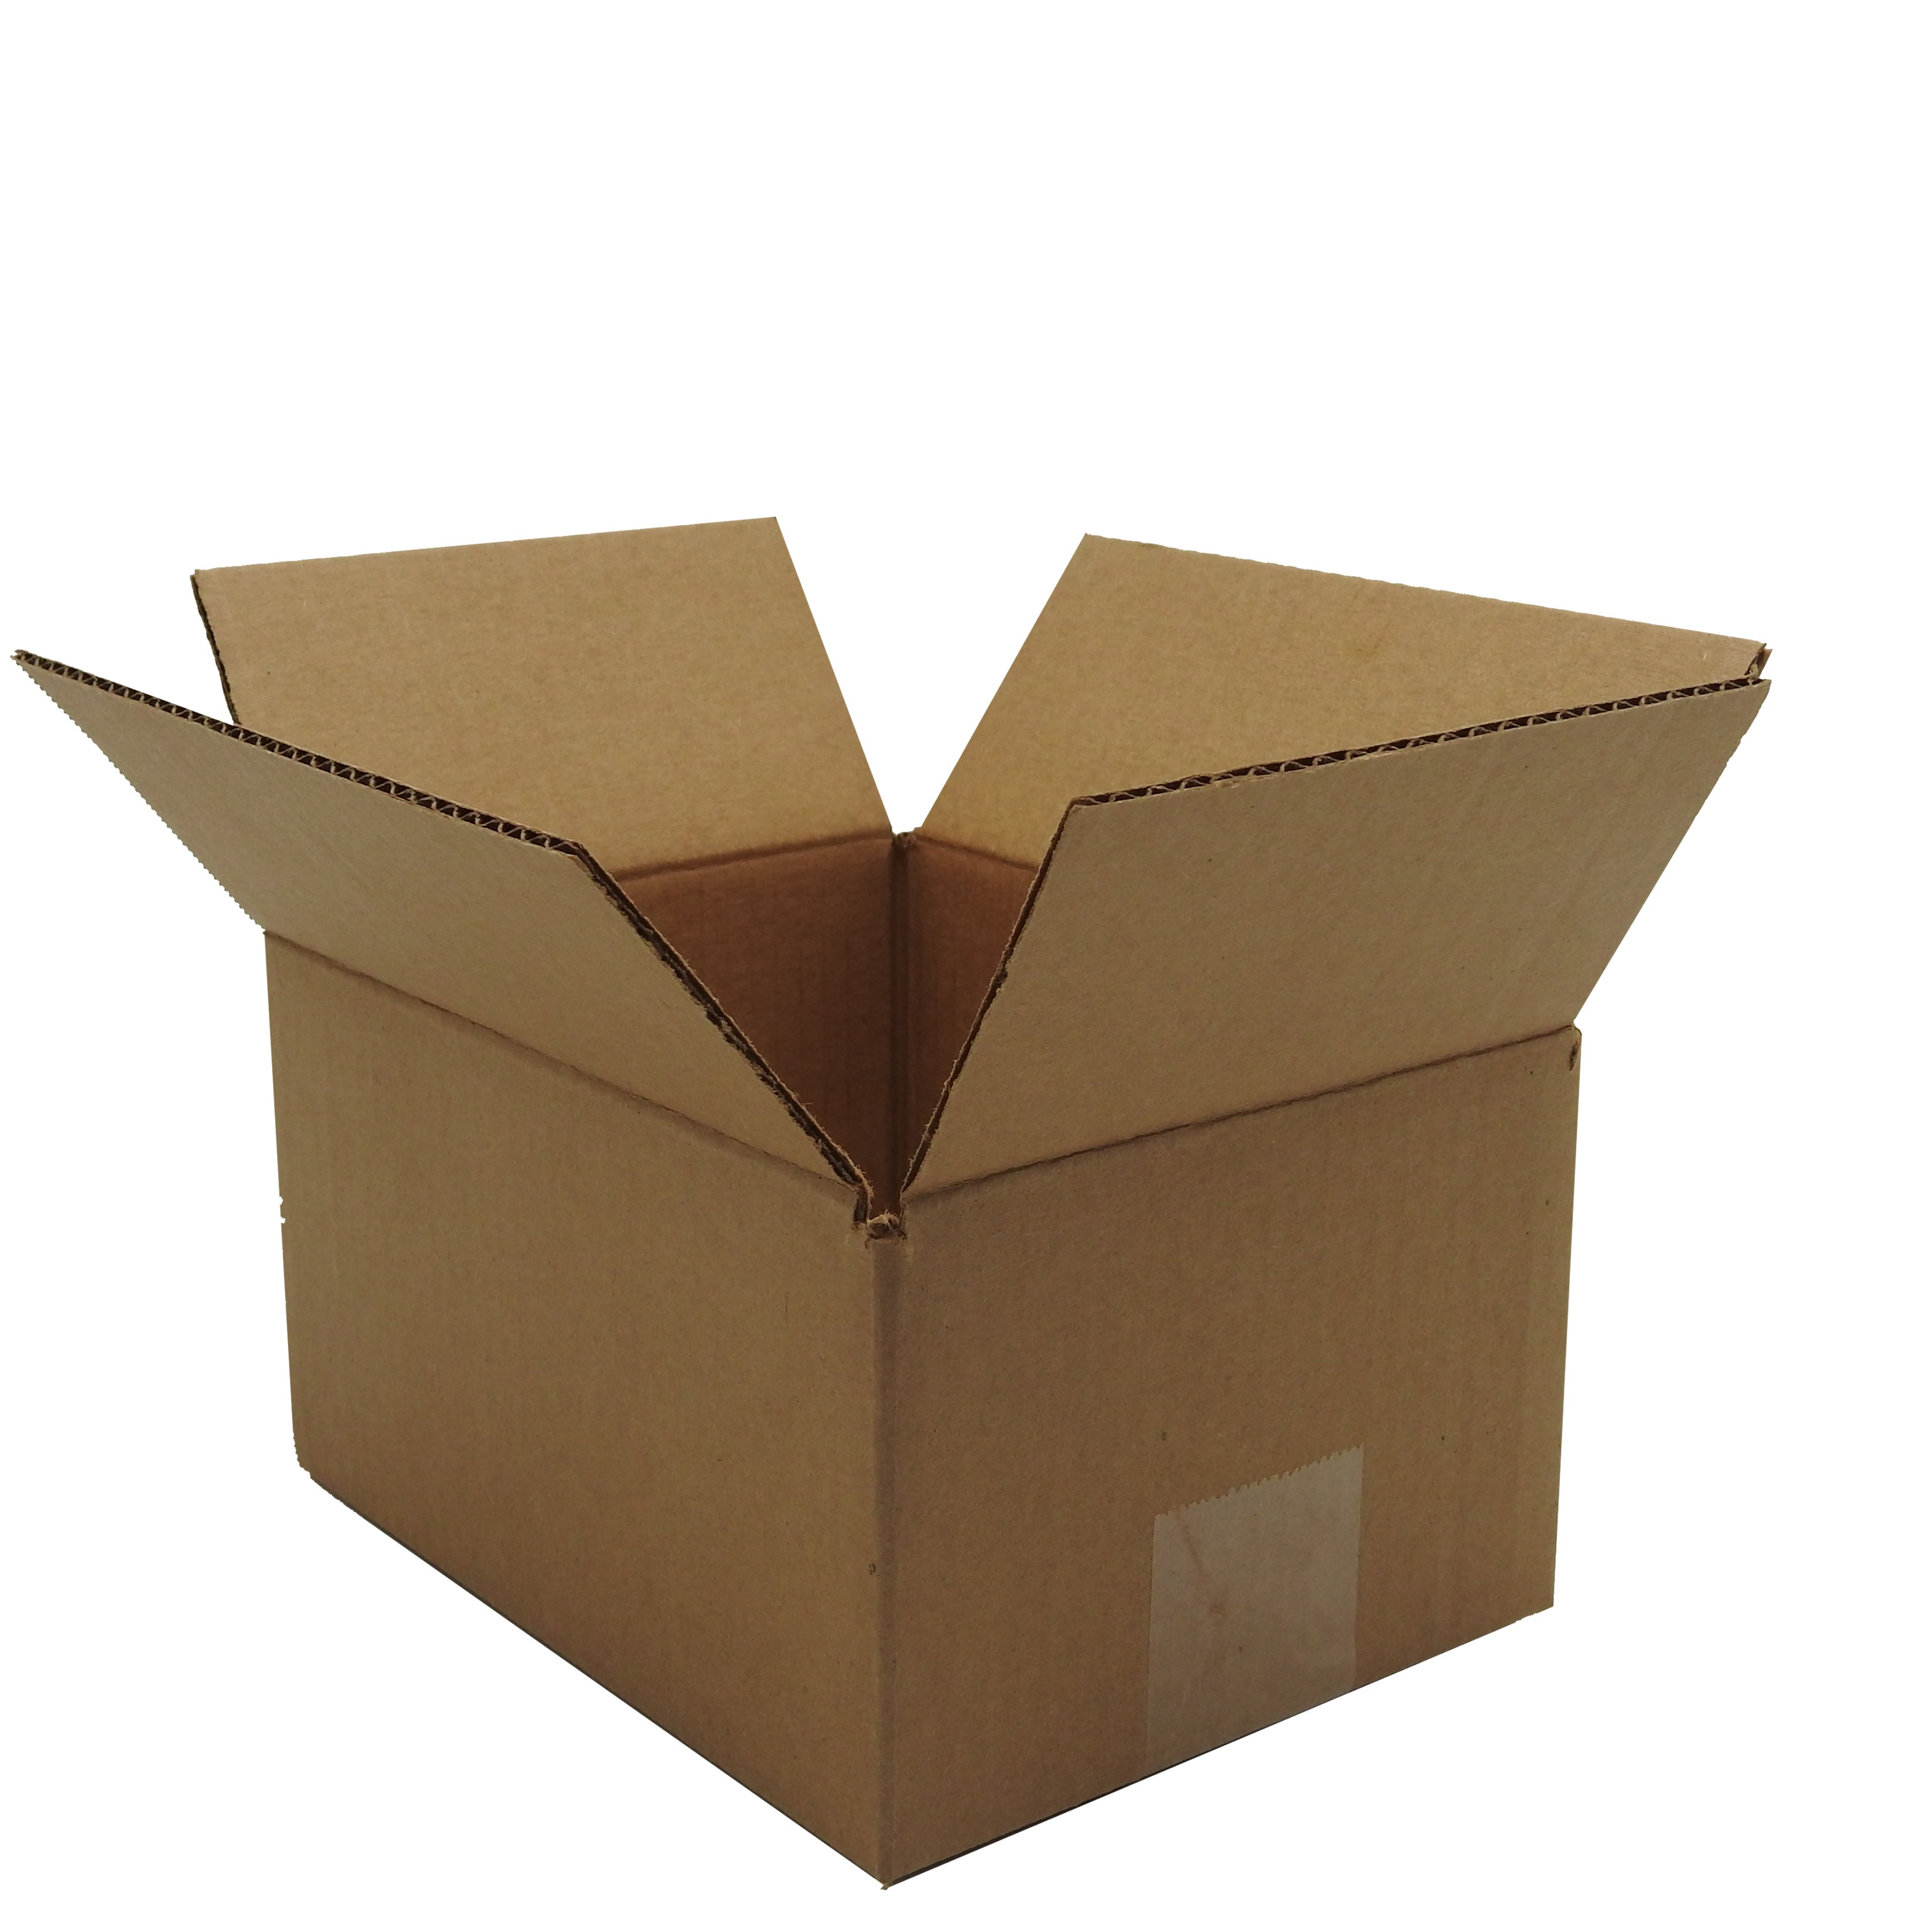 100 8x6x6 Corrugated Cardboard Shipping Mailing Packing Moving Boxes Box Carton